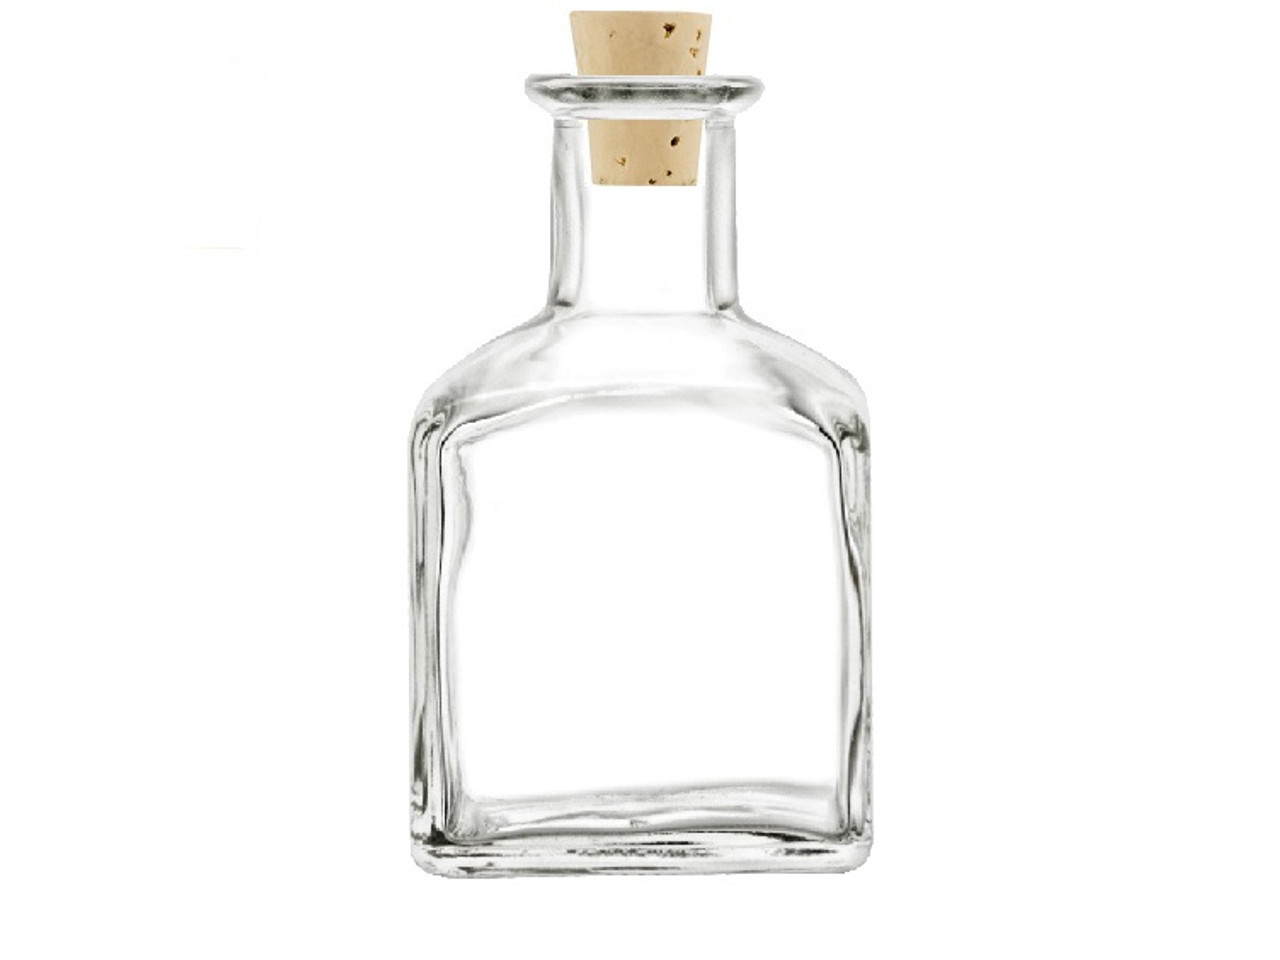 5 oz Square Bottle with Natural Cork Stopper (150 ml)